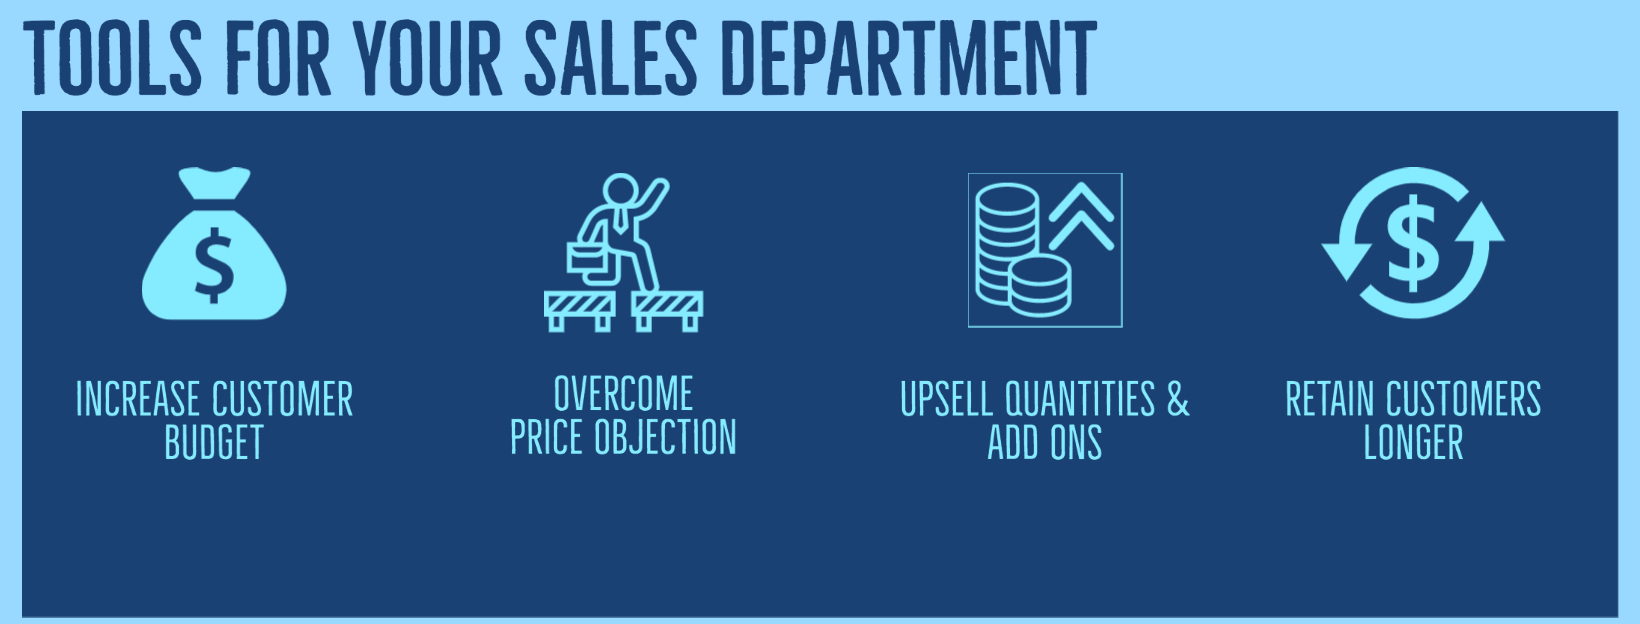 TOOLS FOR SALES DEPARTMENT